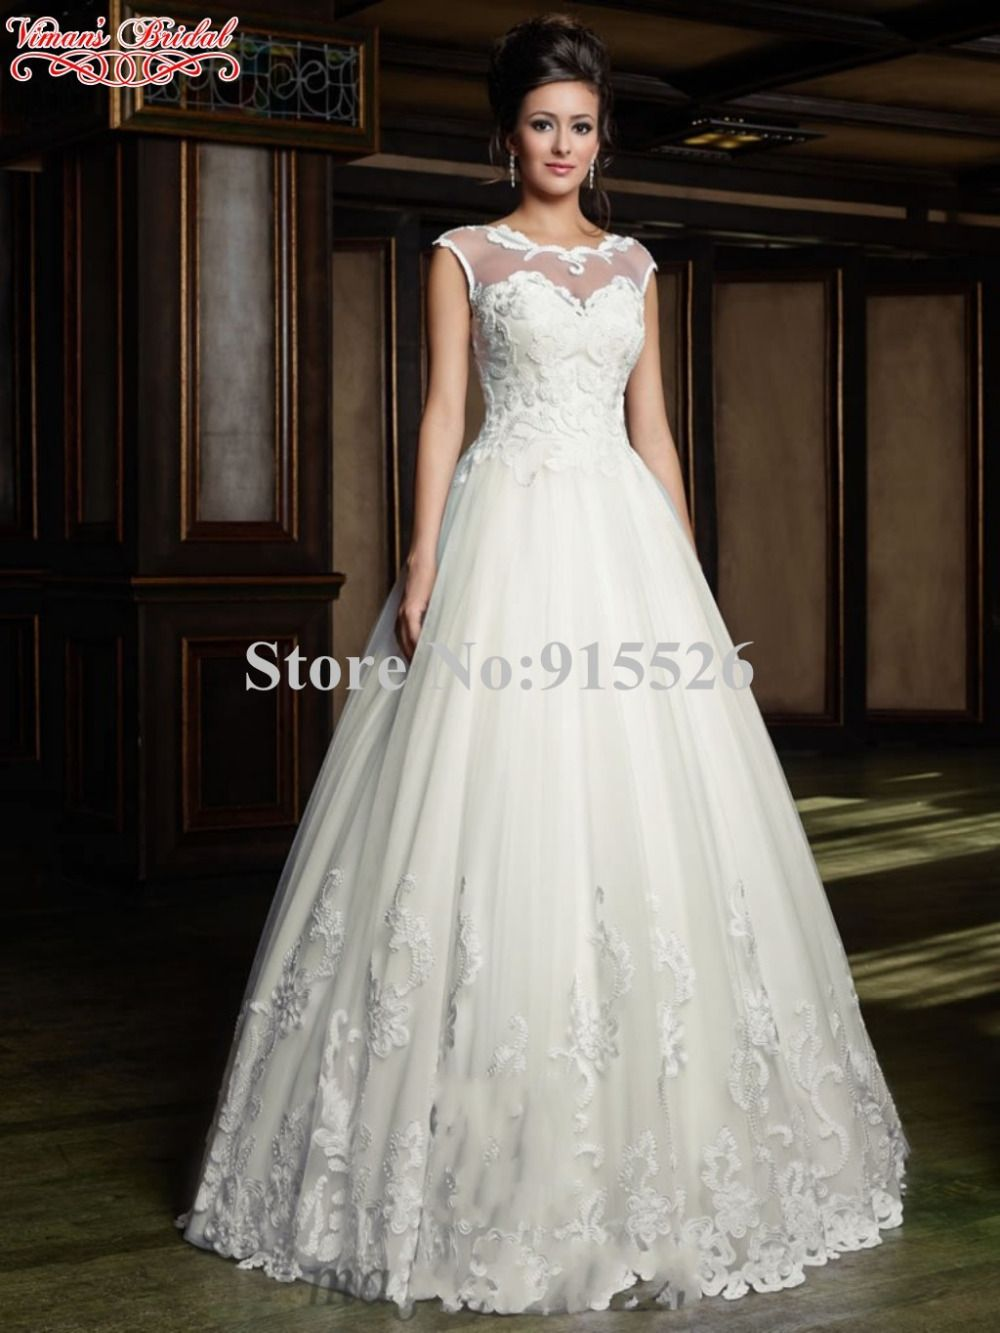 Click to buy ucuc vimanus bridal white gothic wedding dresses